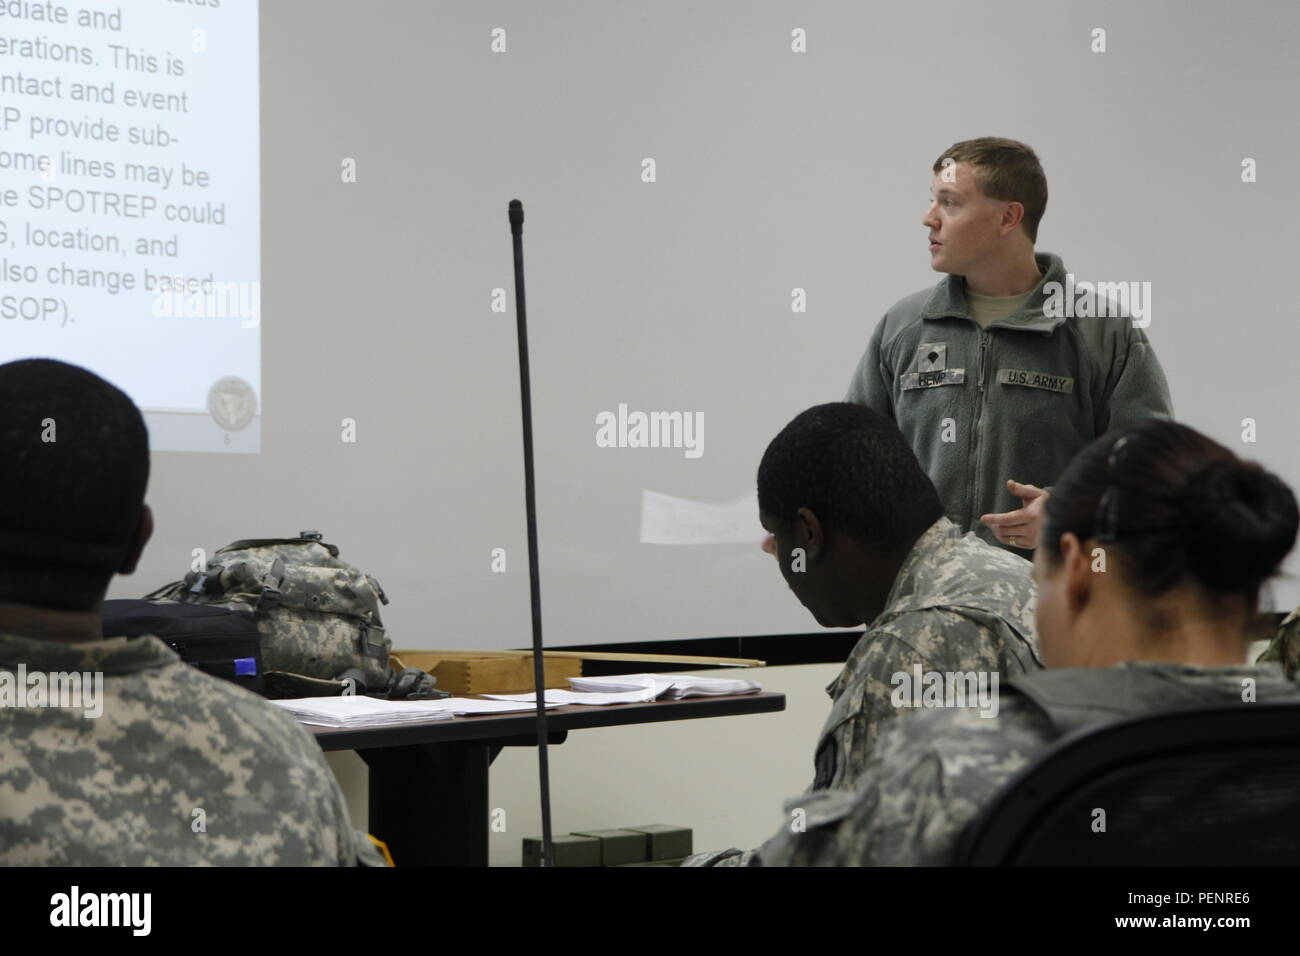 US Army Spc Nickolas Hemp Of The 91st Training Division Instructs Soldiers On How To